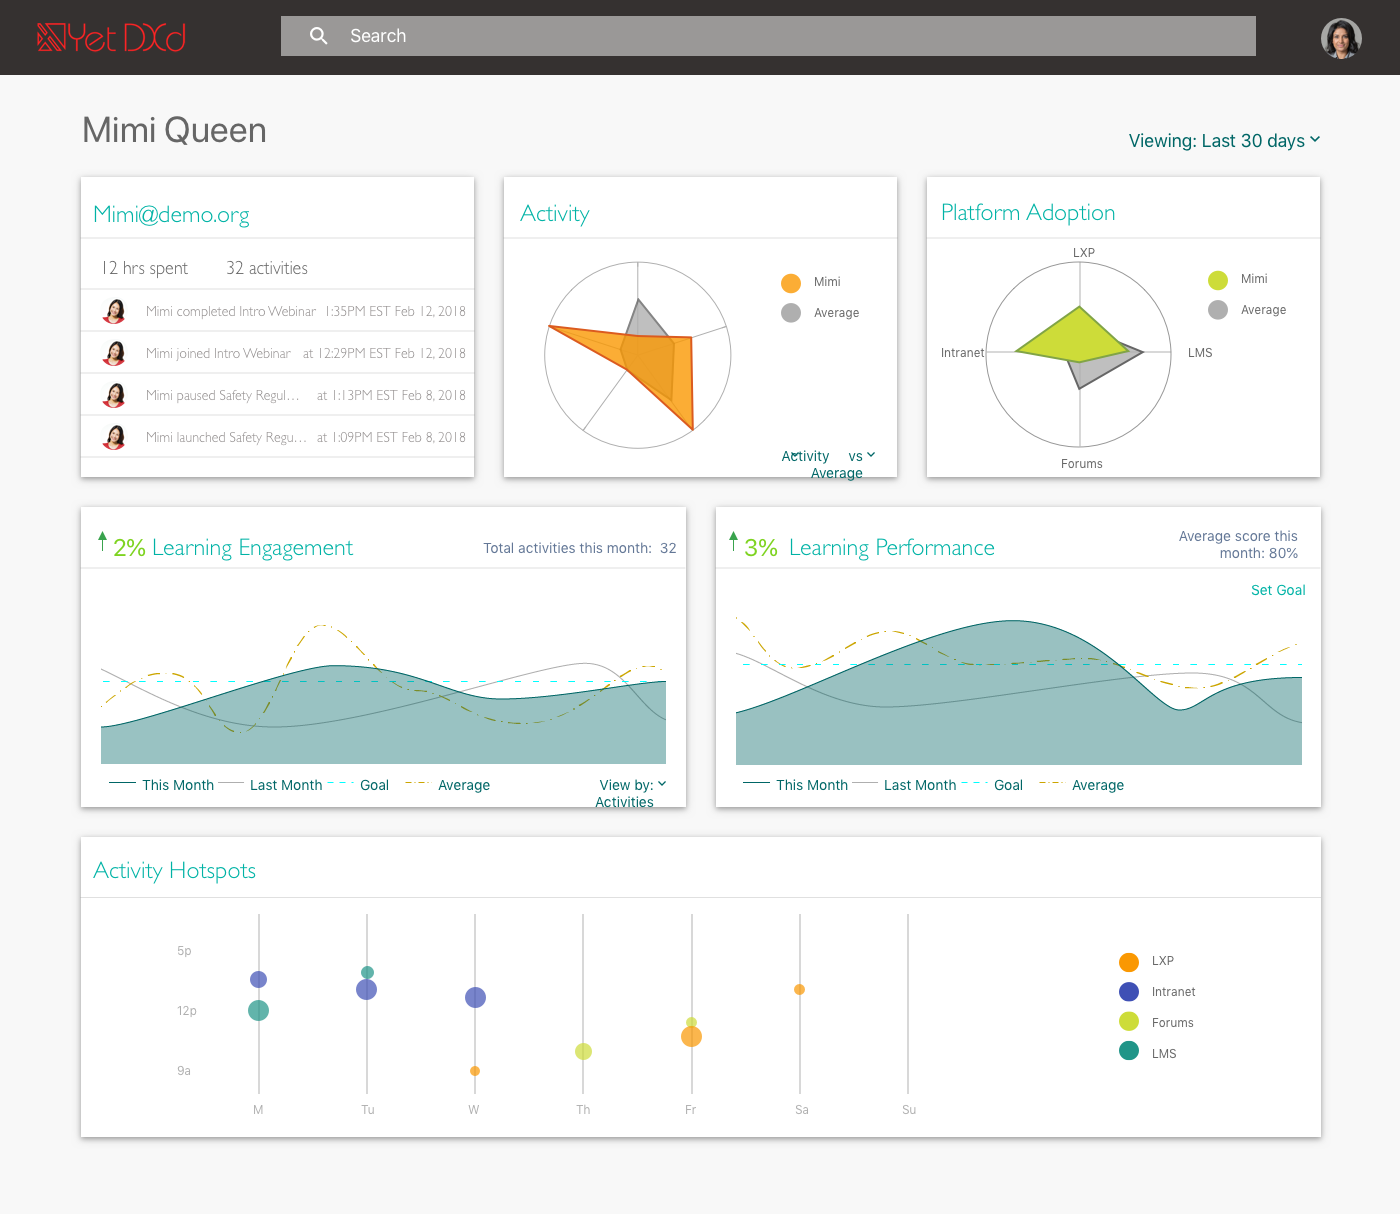 Dashboard consisting of visualizations